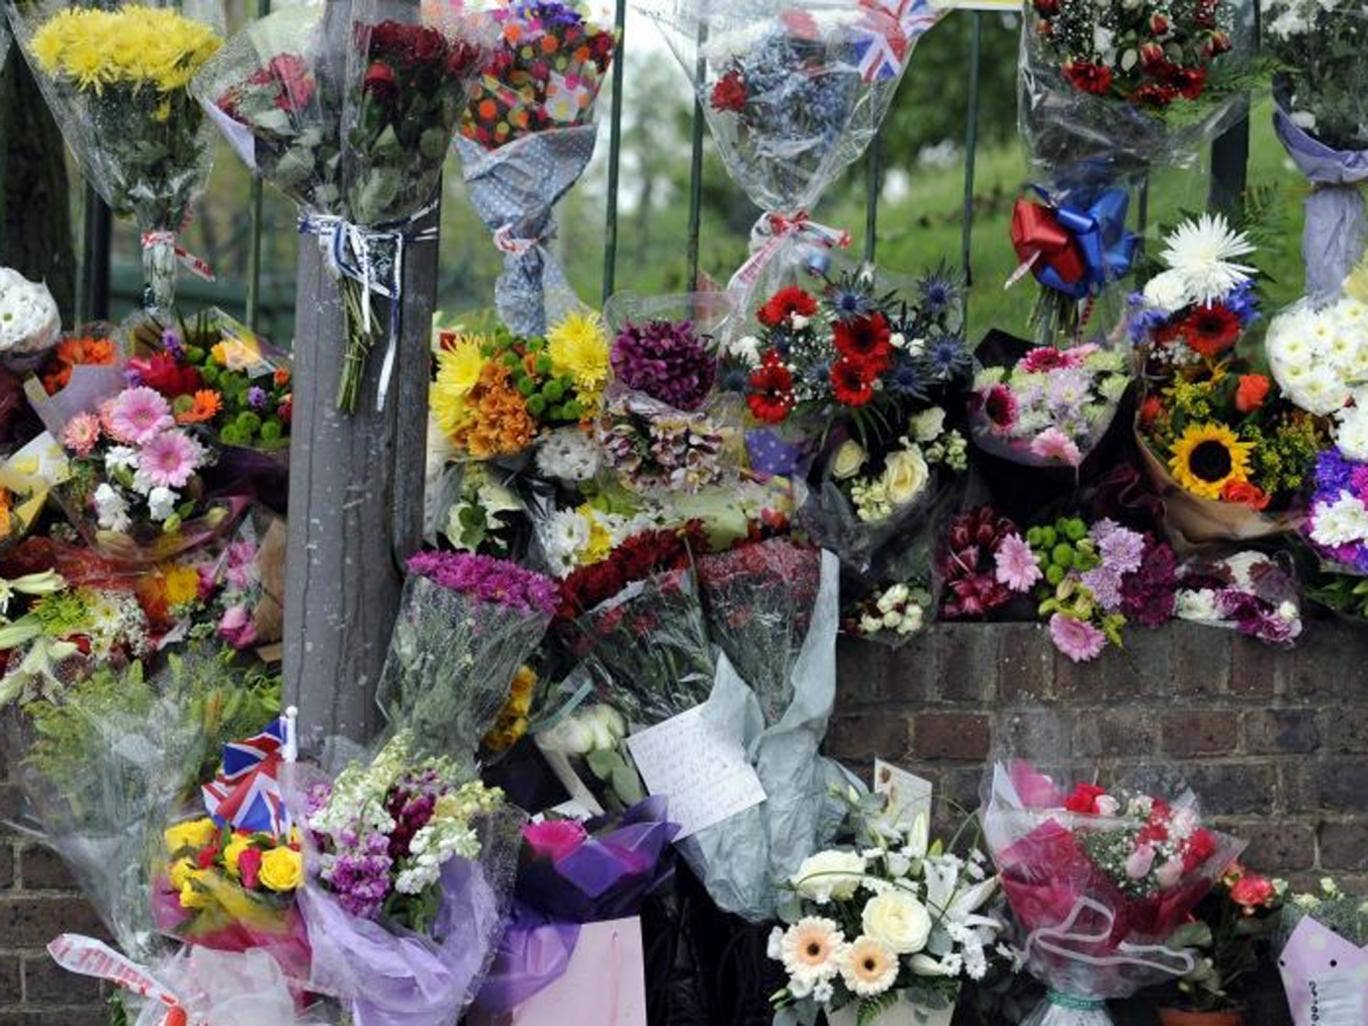 Flowers and tributes left at the site of Lee Rigby's murder in Woolwich